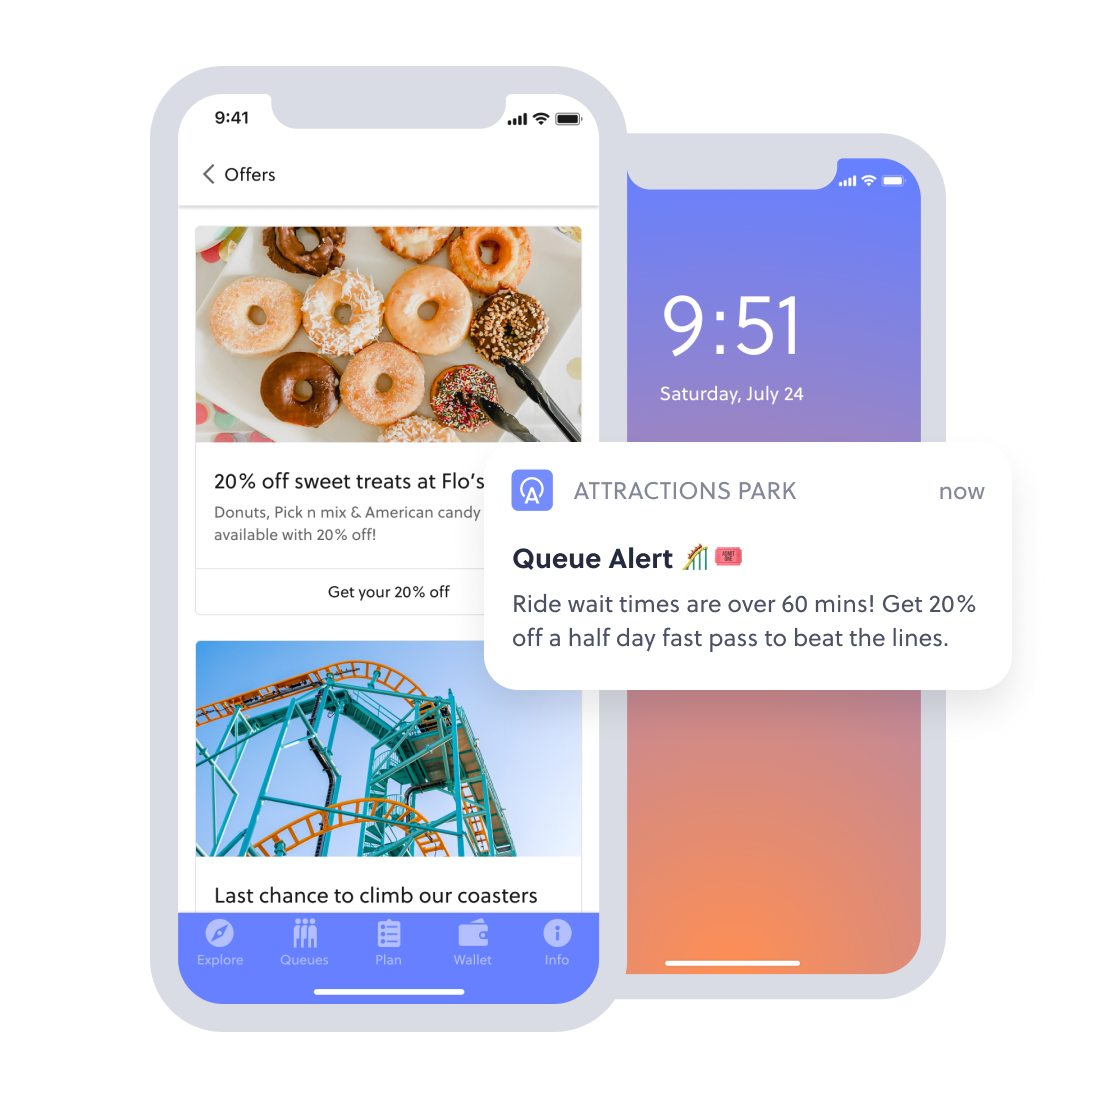 in-app only offers and push notification selling fast pass tickets